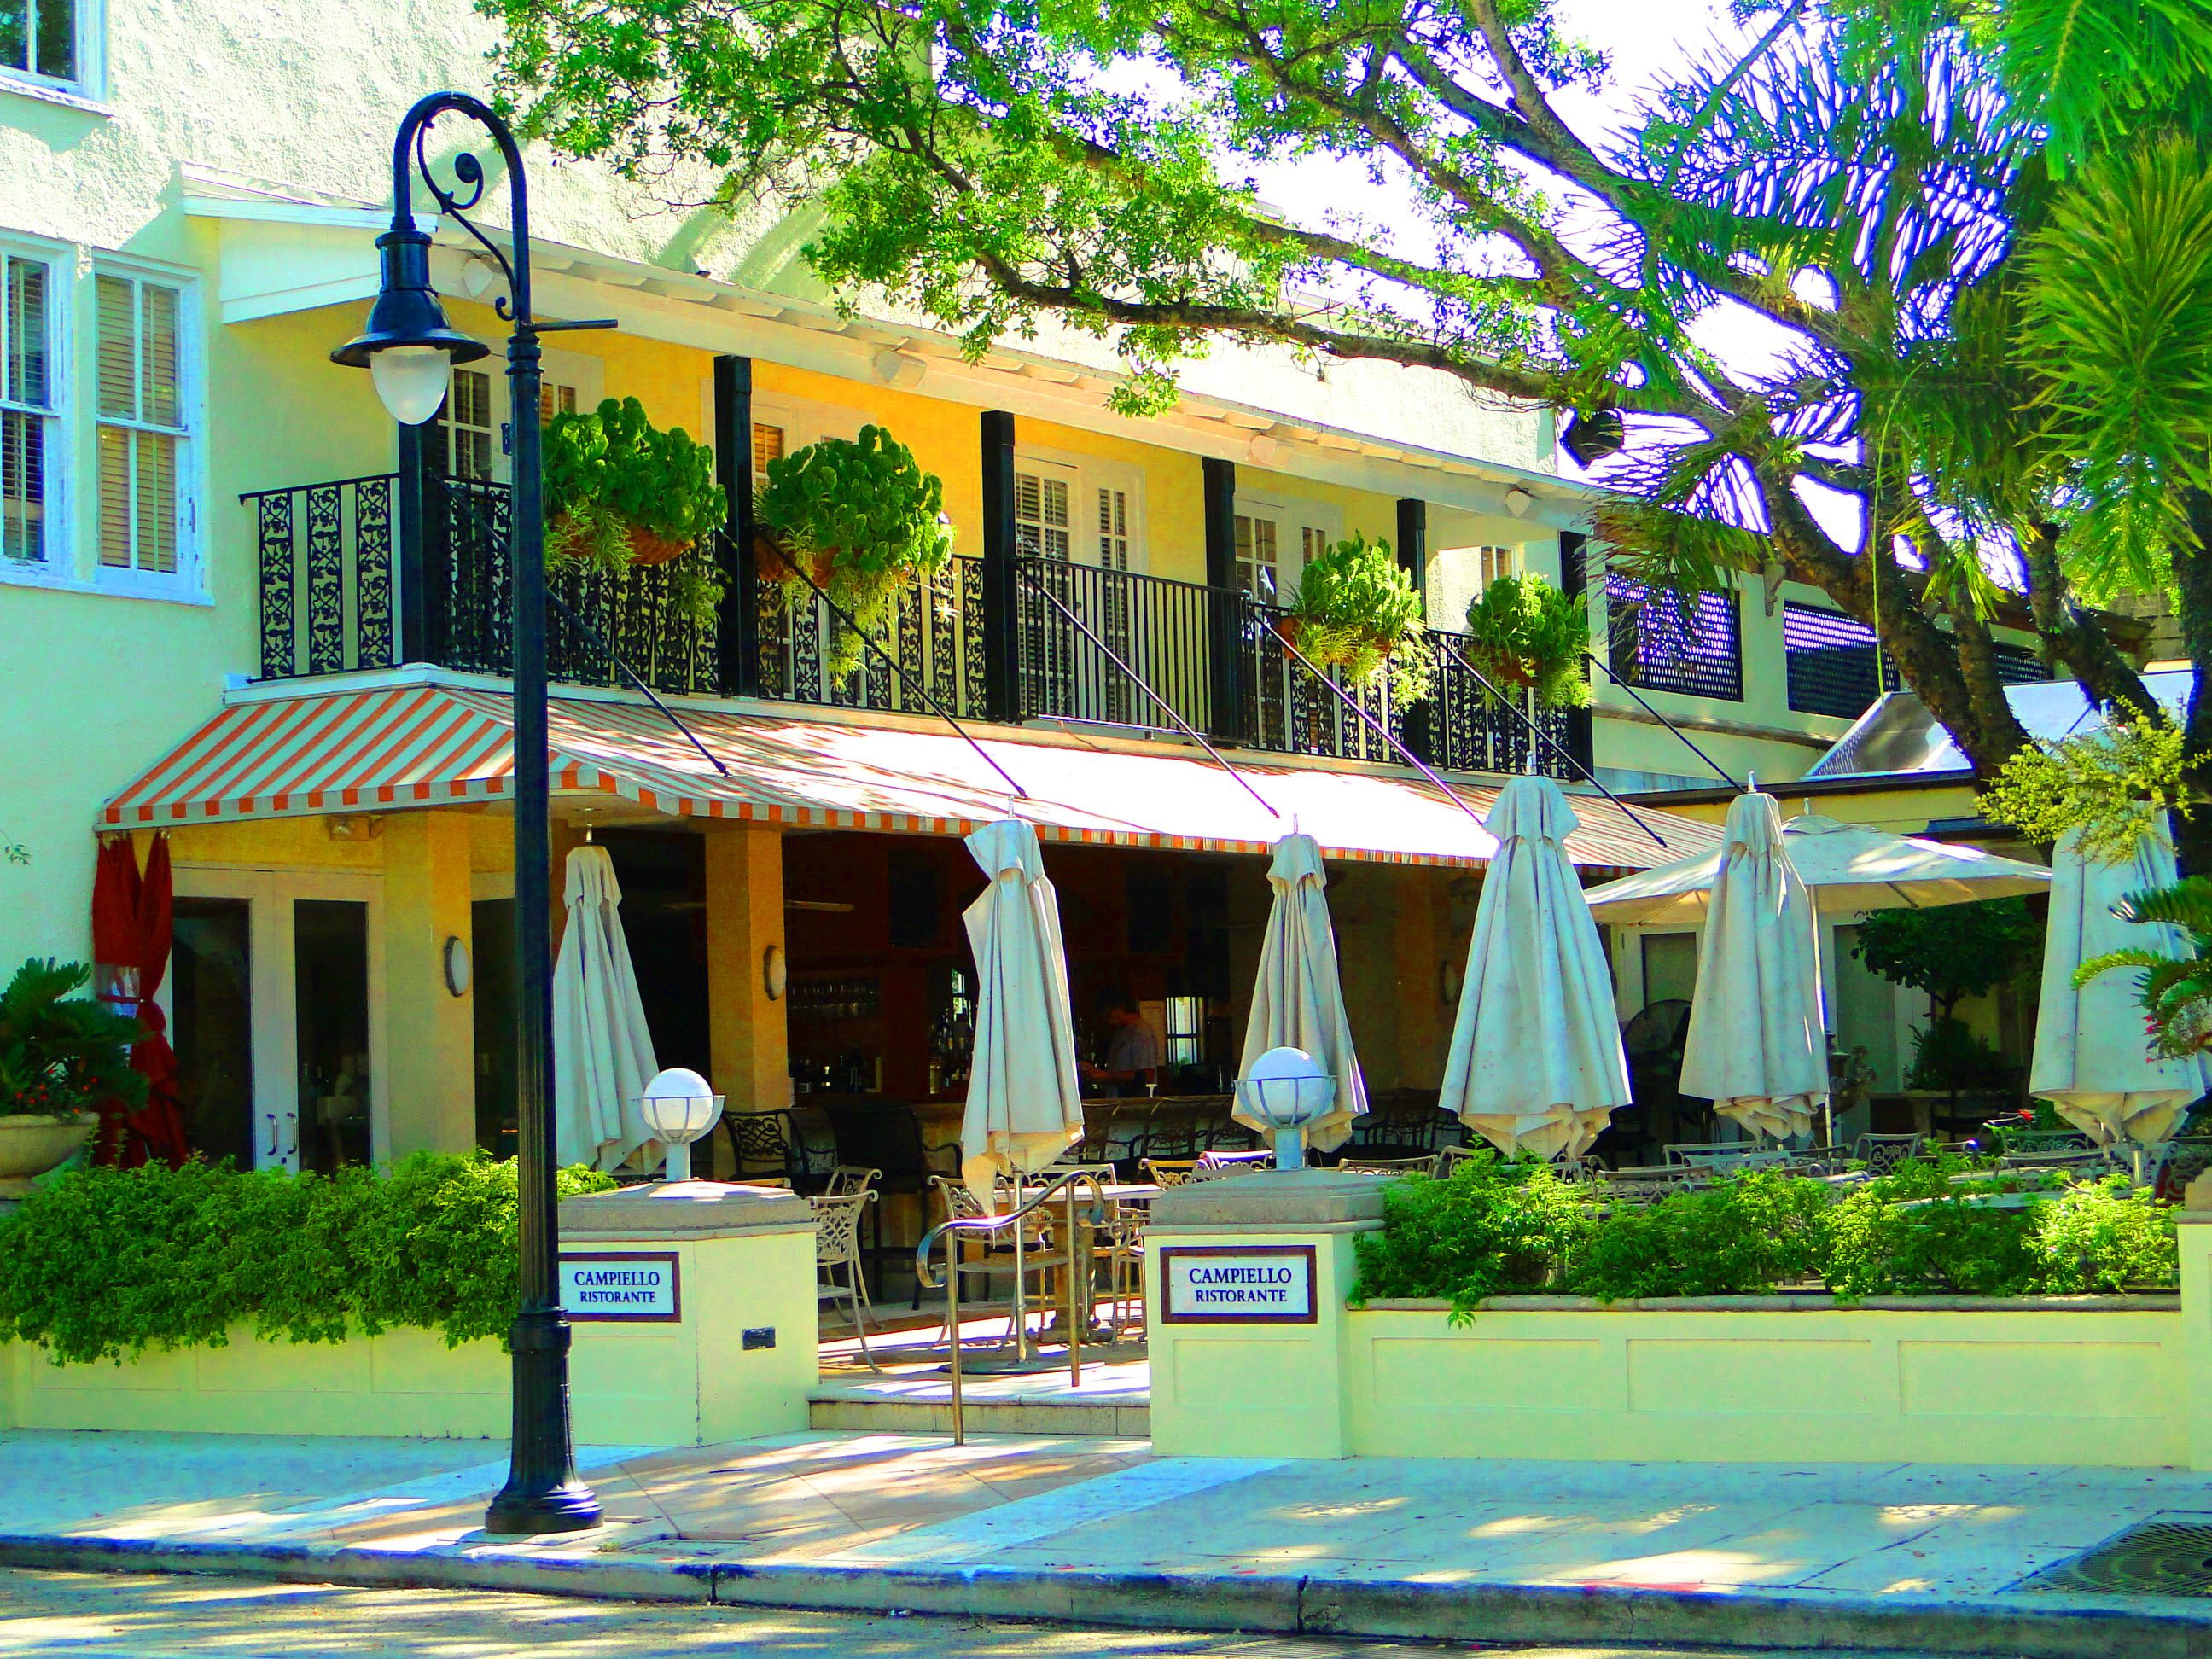 Campiello Restaurant 3rd St Naples Fl One Of The Best Restaurants In City Www Kristoffjewelers